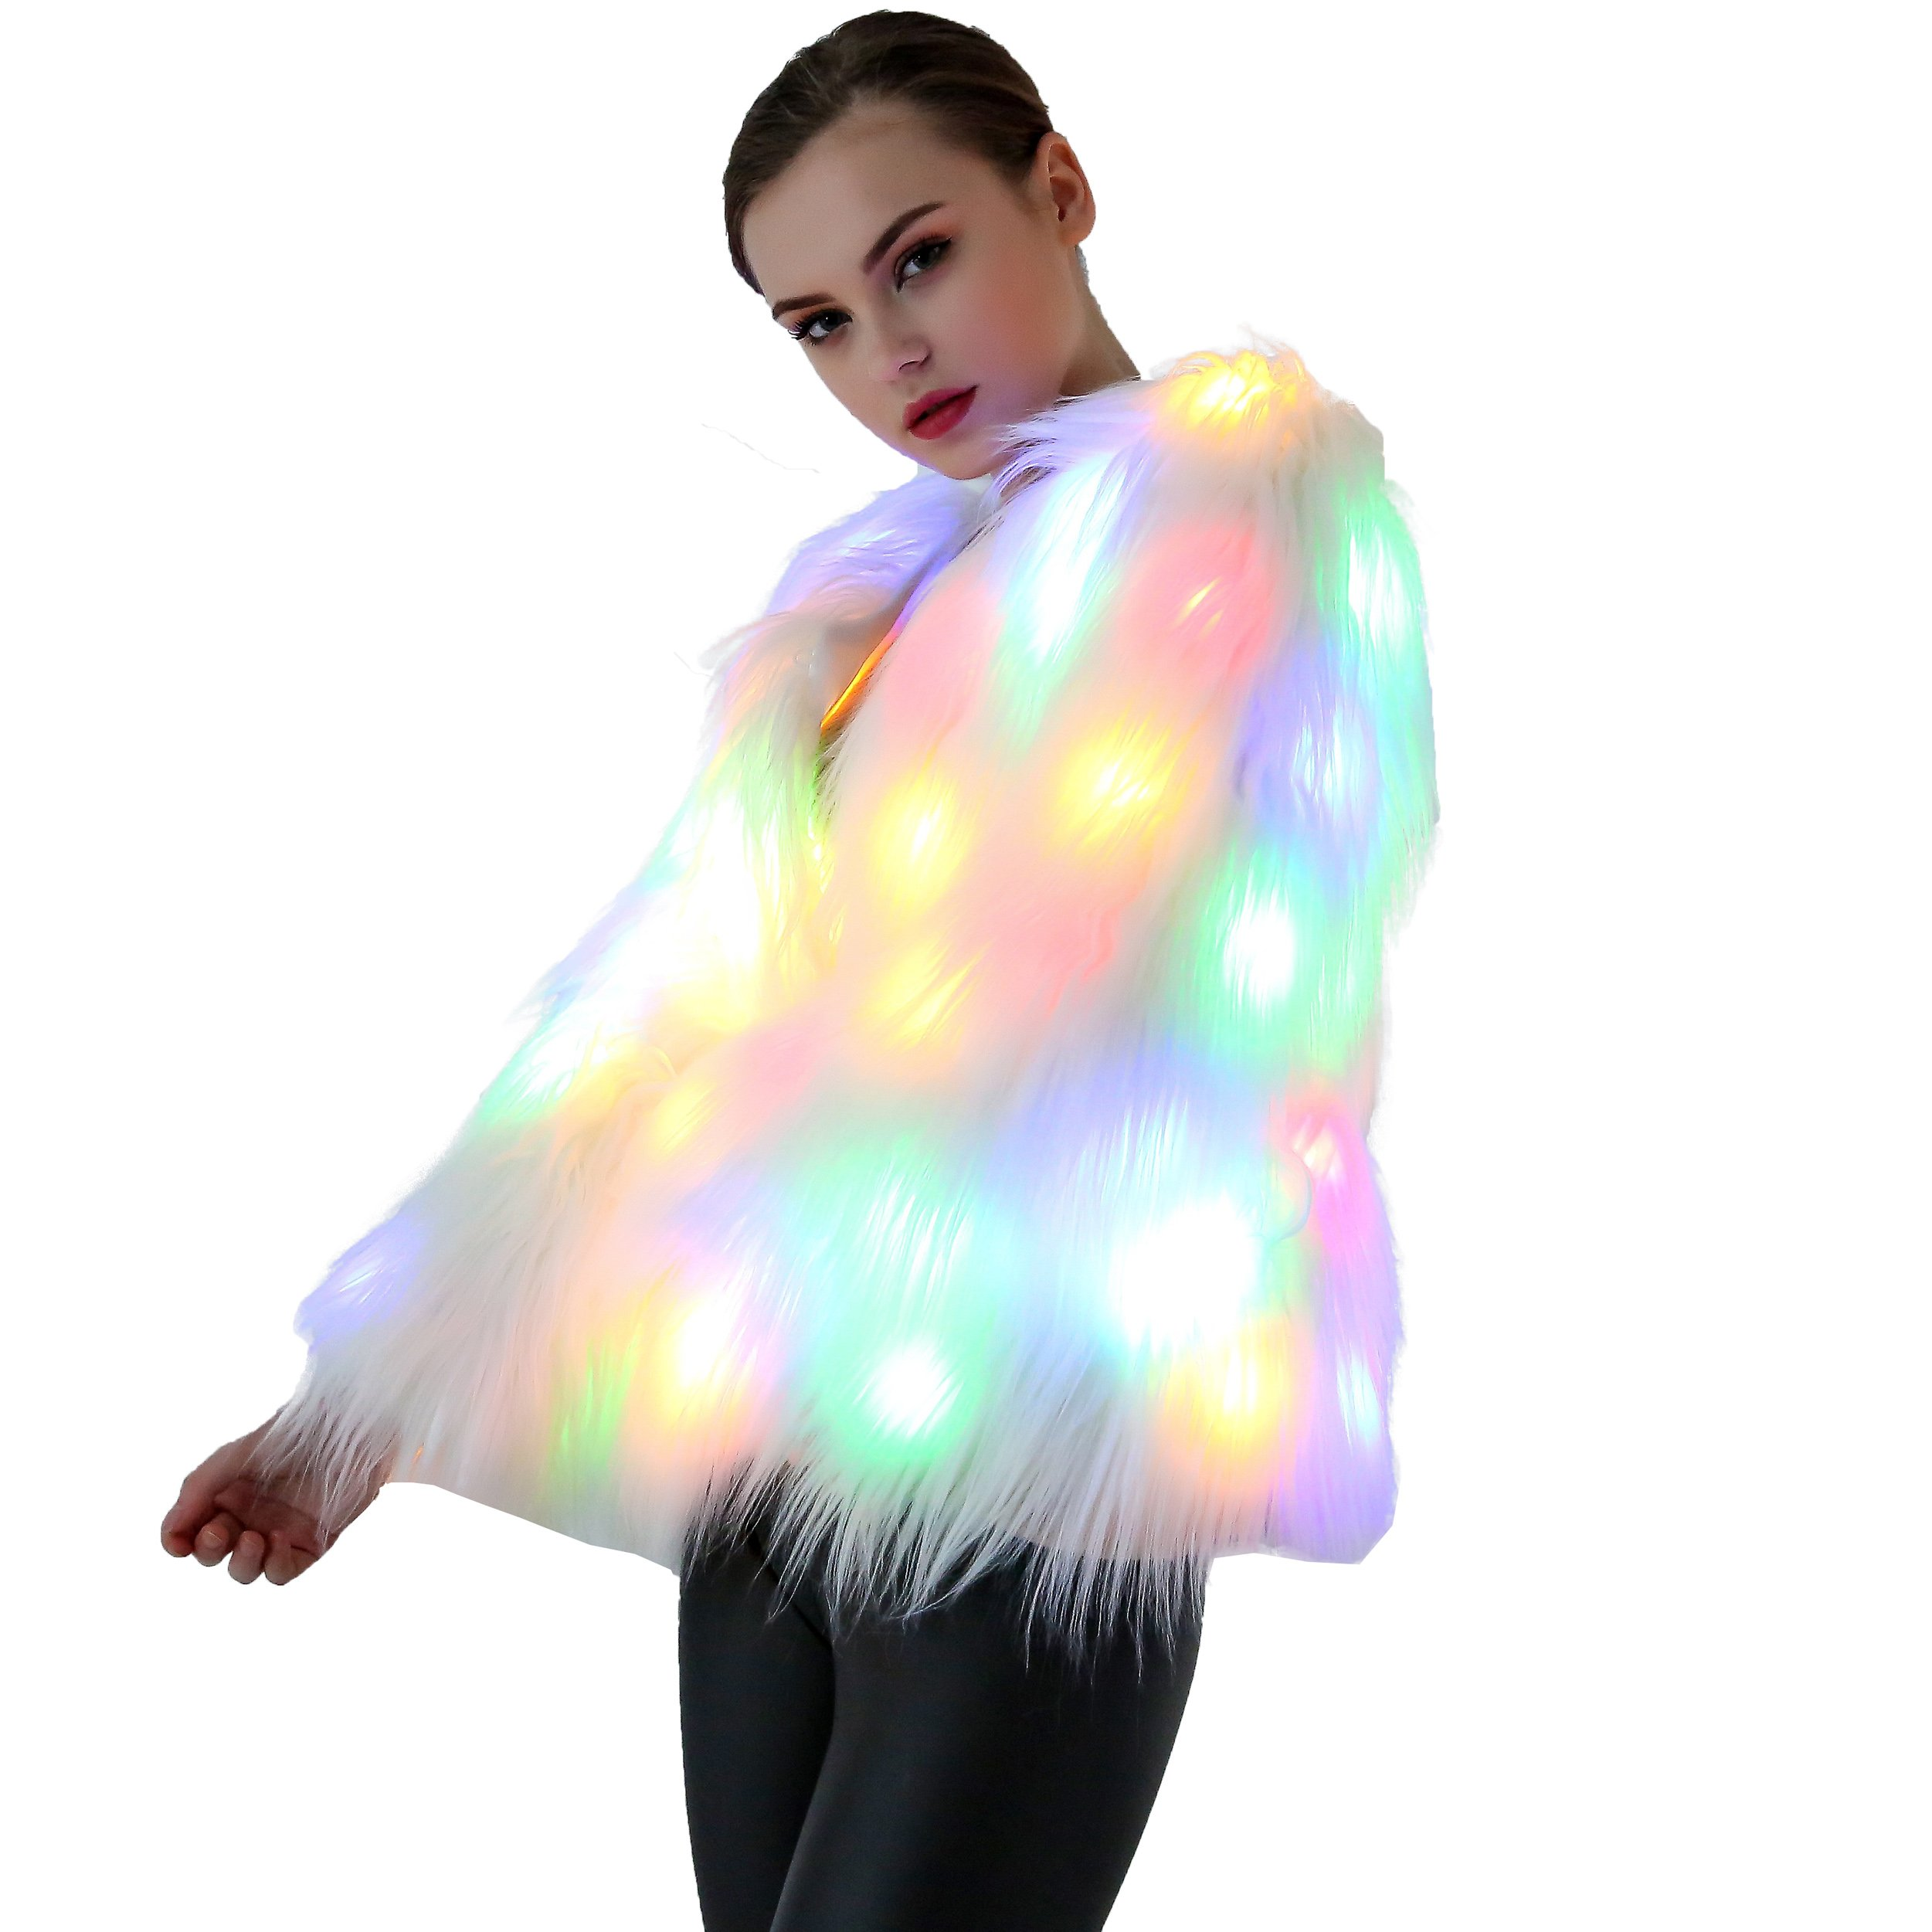 8a9dcbae6 Caracilia Women Solid LED Light Up Rave Faux Fur Jacket Shaggy Tag L 37/LED